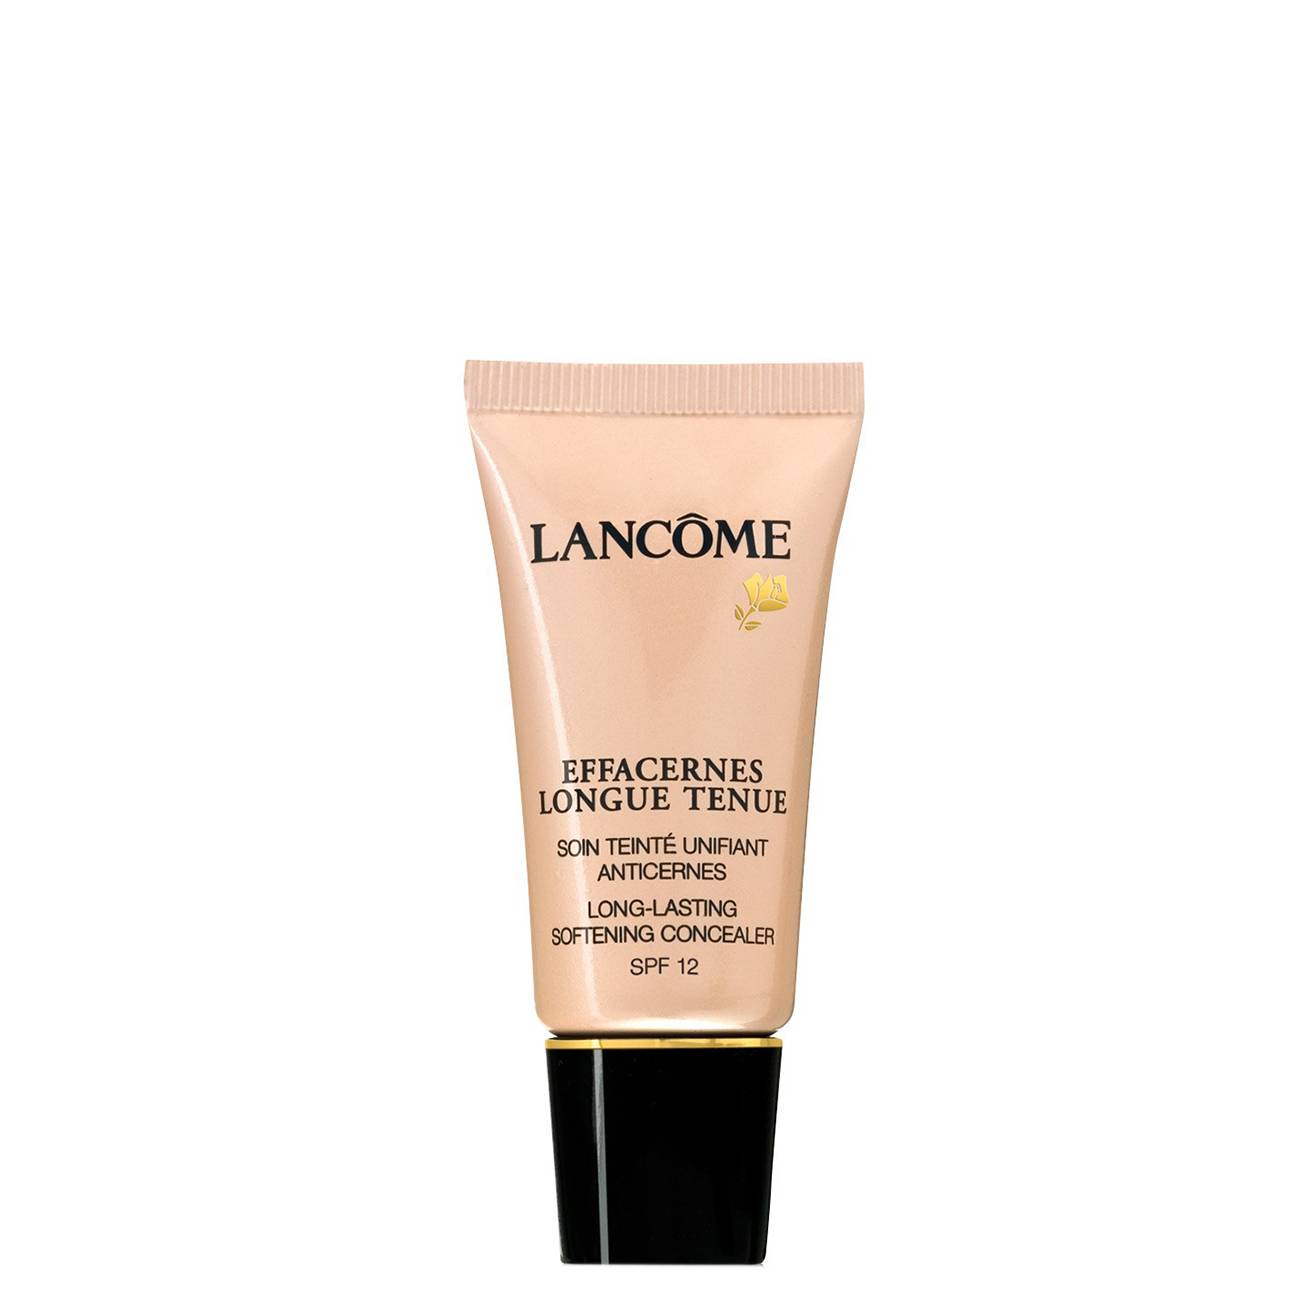 Long Lasting Softing Concealear 15 Ml Lancôme imagine 2021 bestvalue.eu